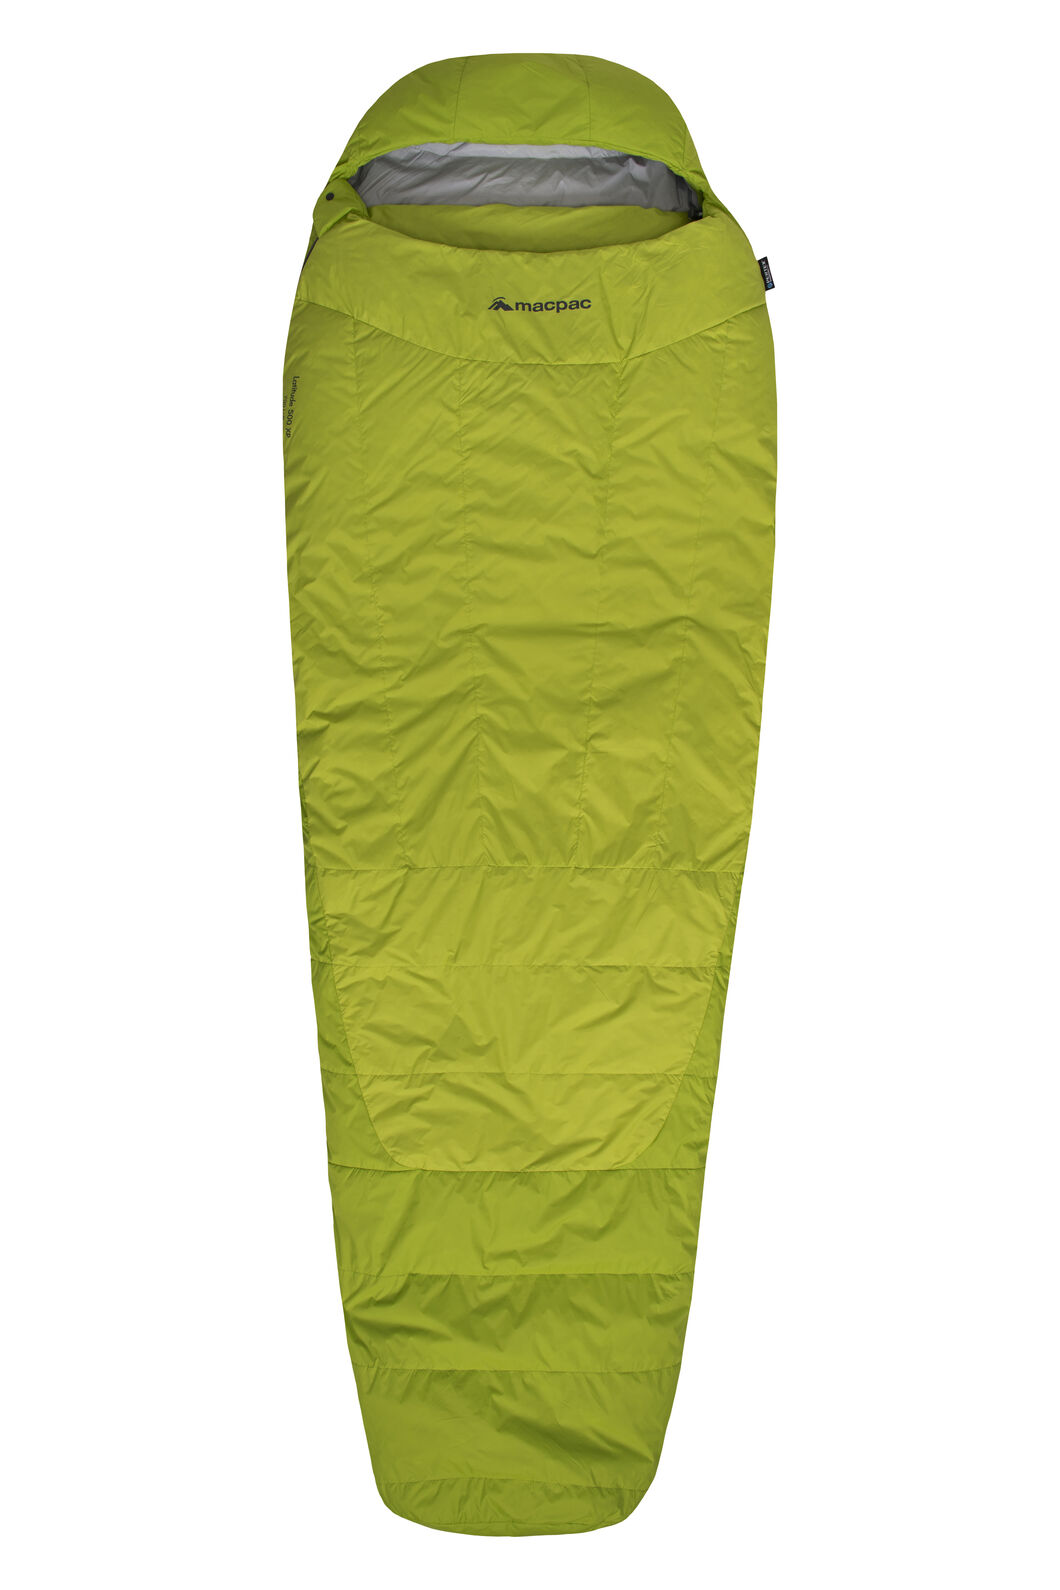 Macpac Latitude XP Goose Down 500 Sleeping Bag - Standard, Tender Shoots, hi-res